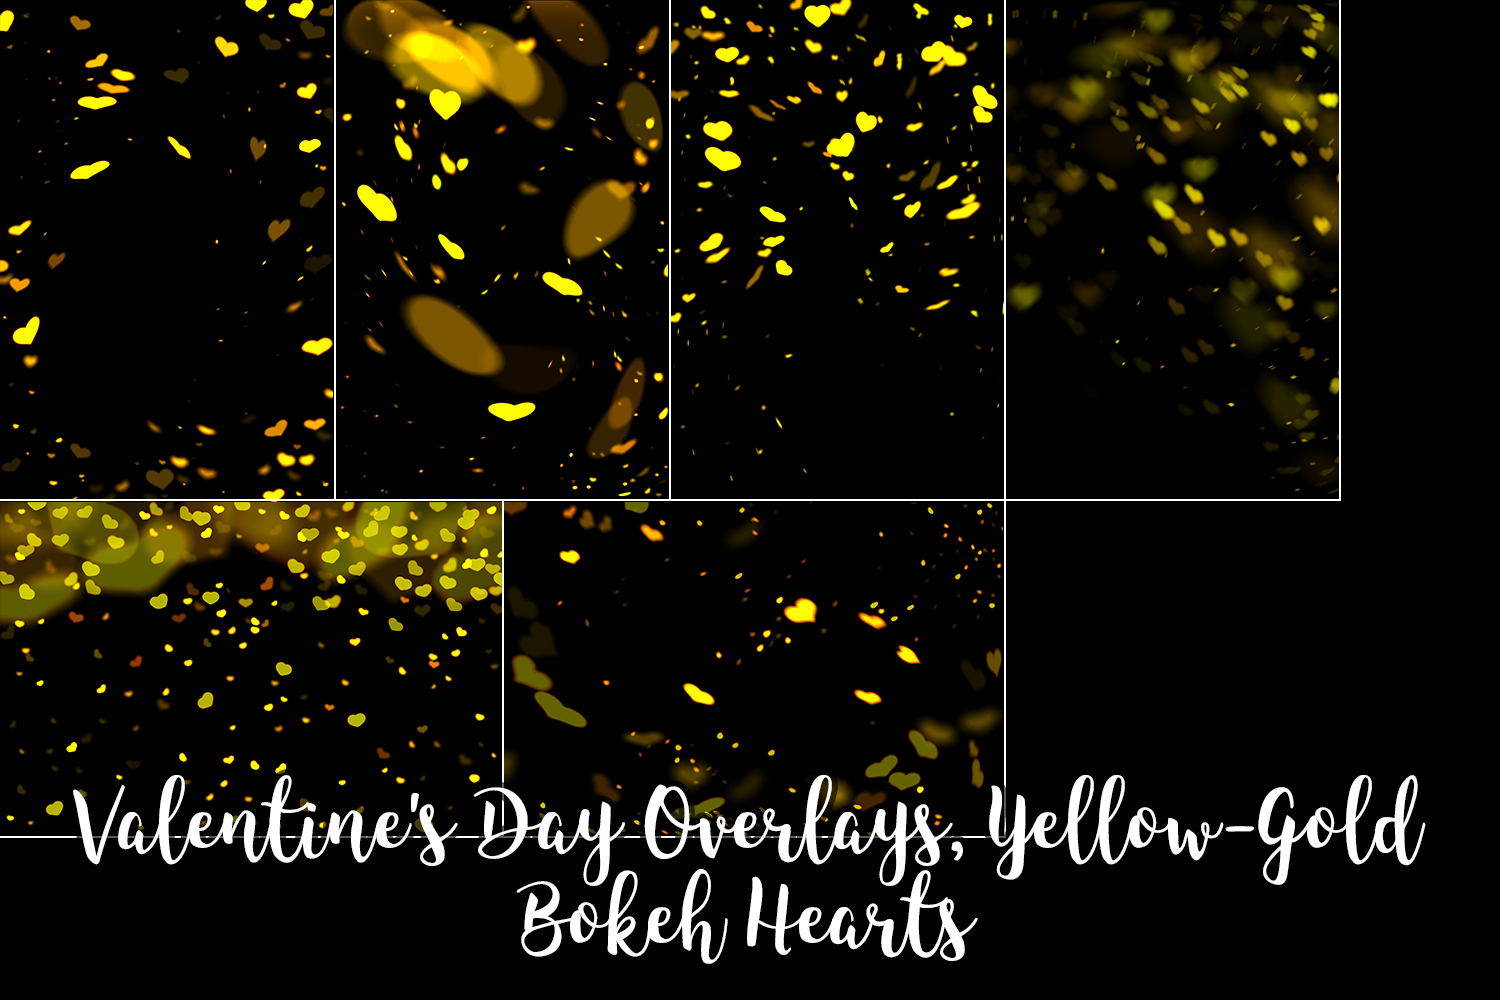 Valentine's Day Overlays, Yellow Gold Hearts Bokeh Overlays example image 5